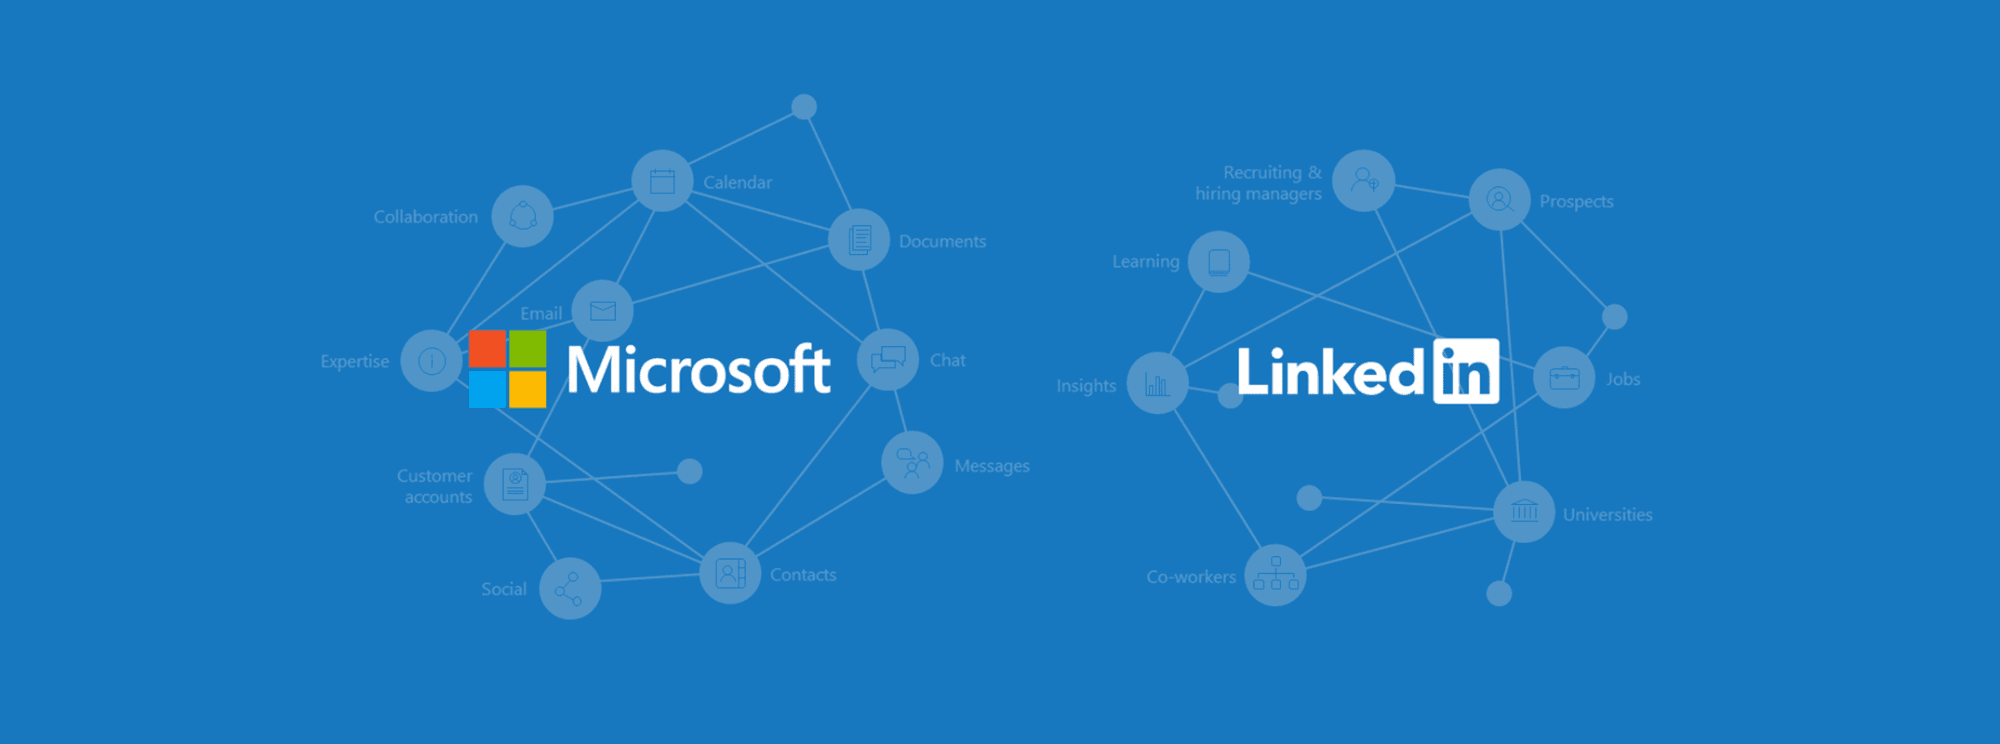 Microsoft reveals upcoming integrations with LinkedIn